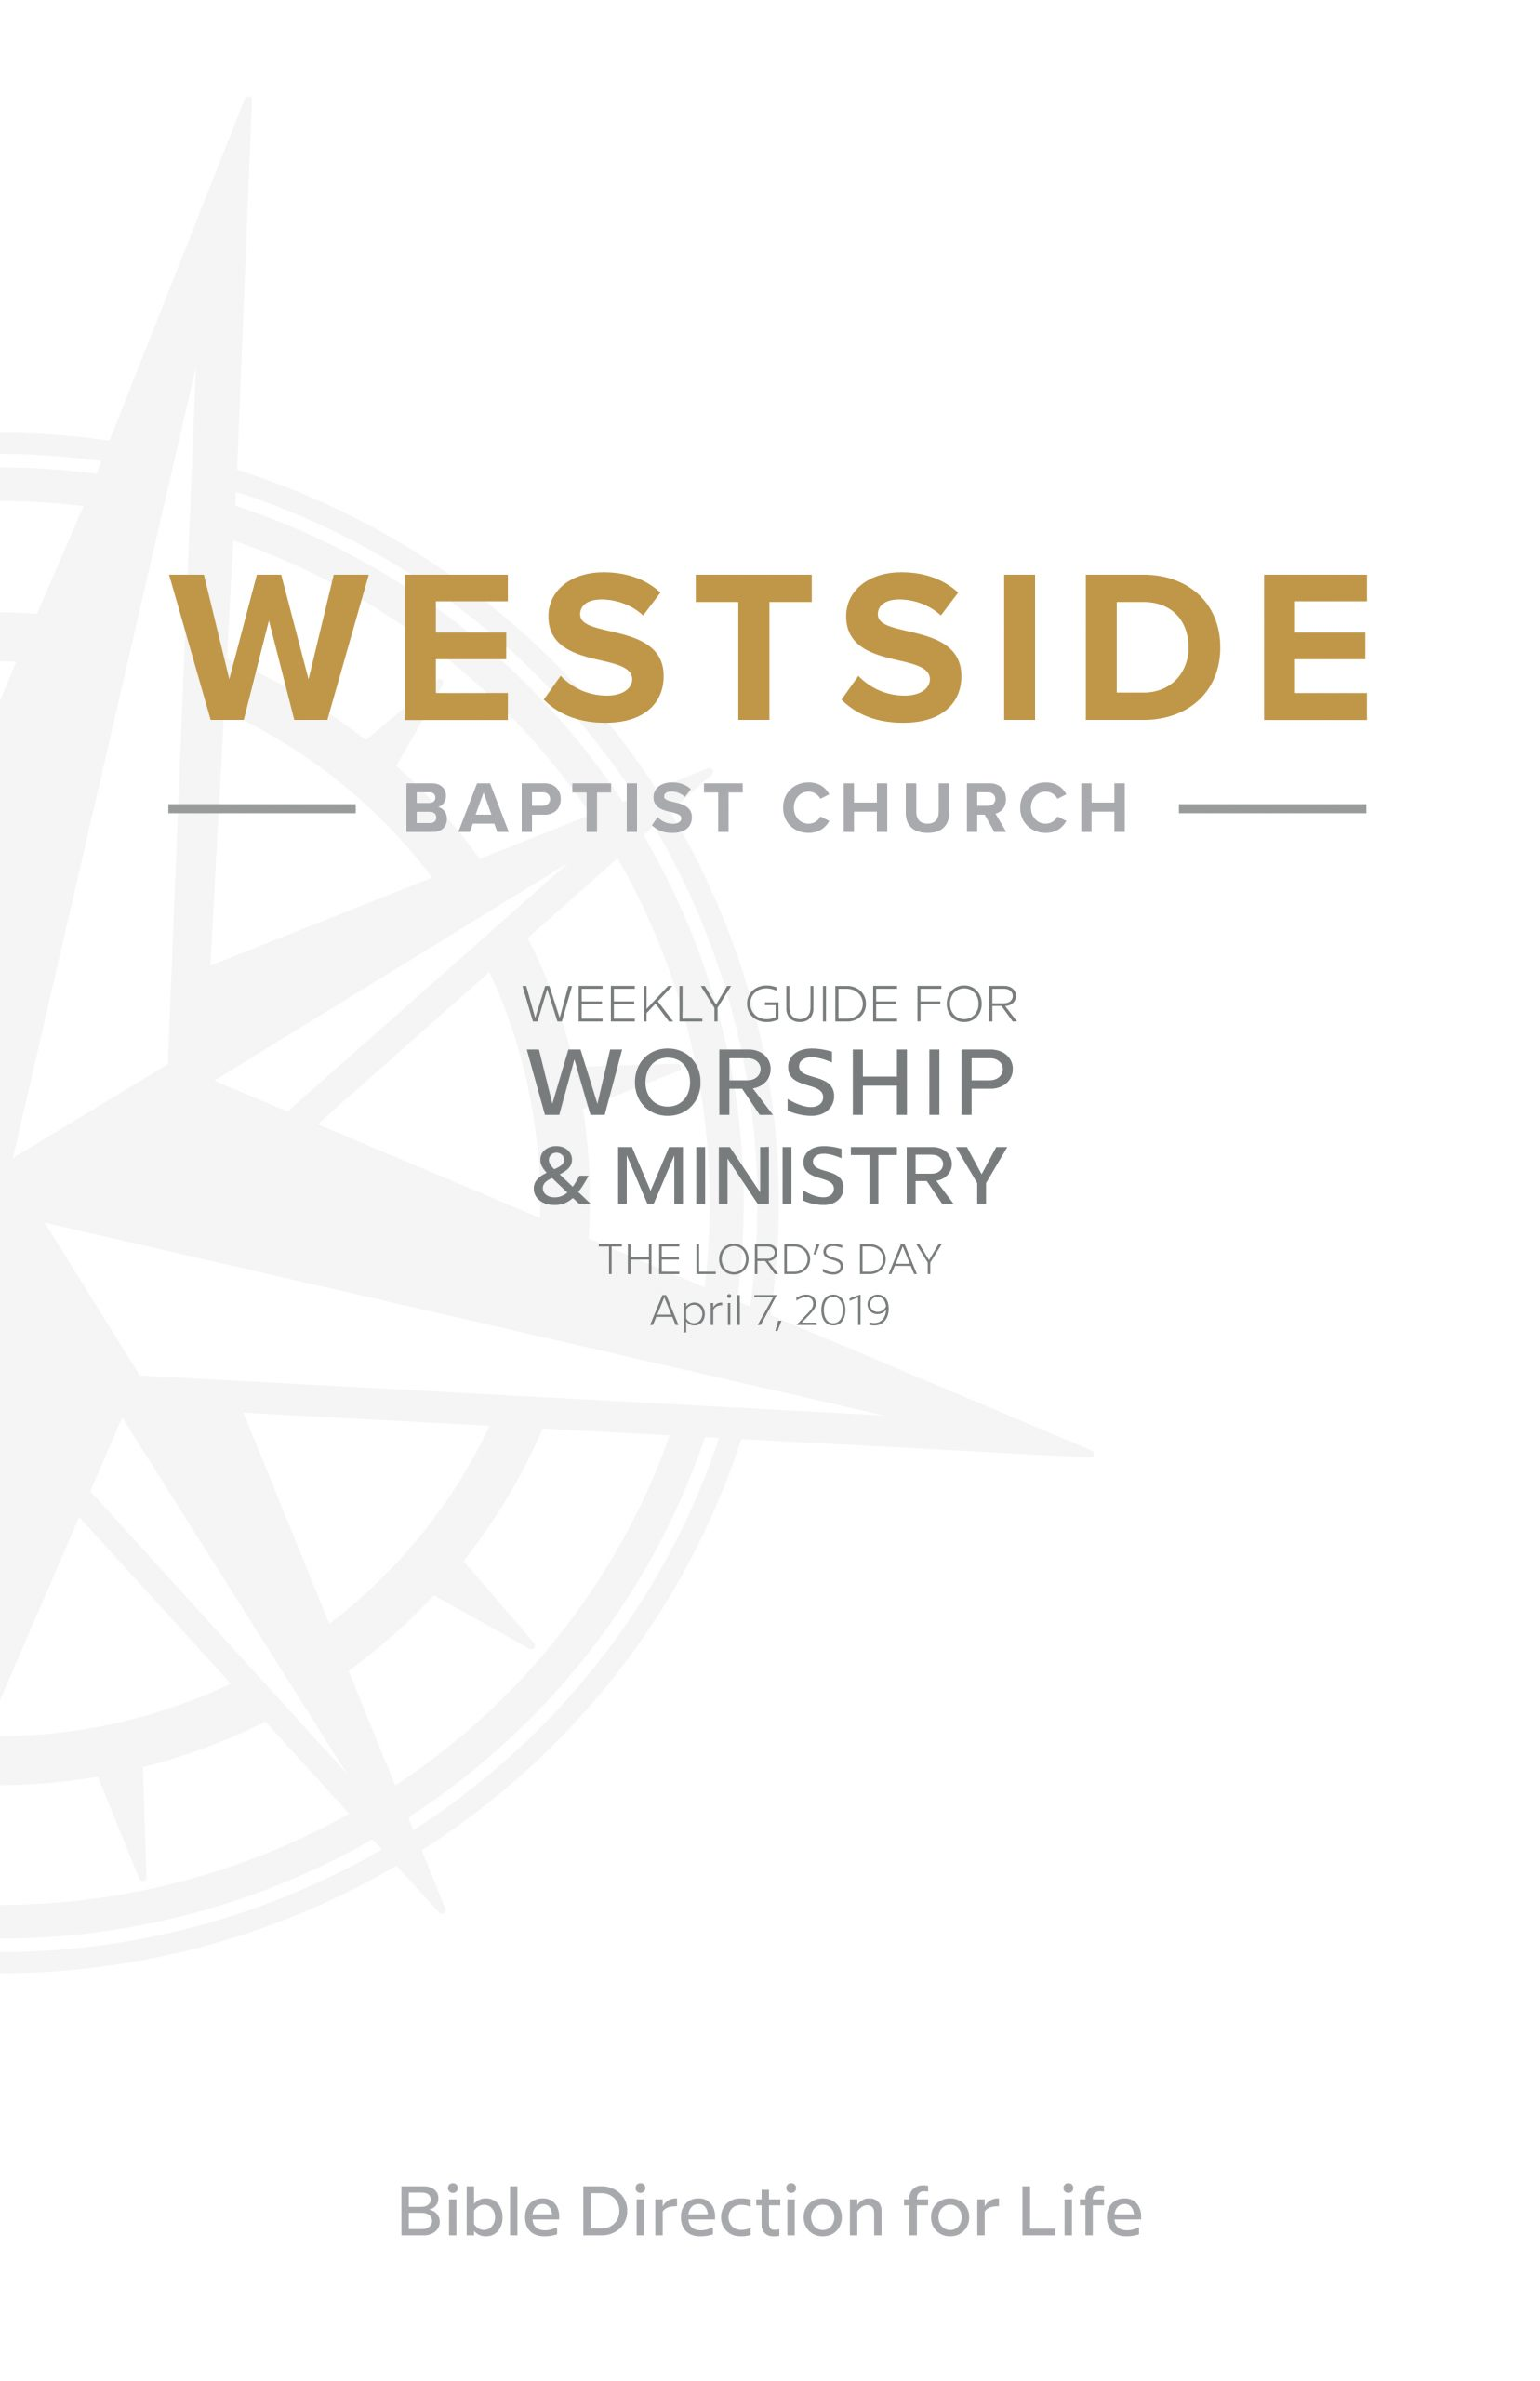 Weekly Guide for Worship and Ministry—April 7